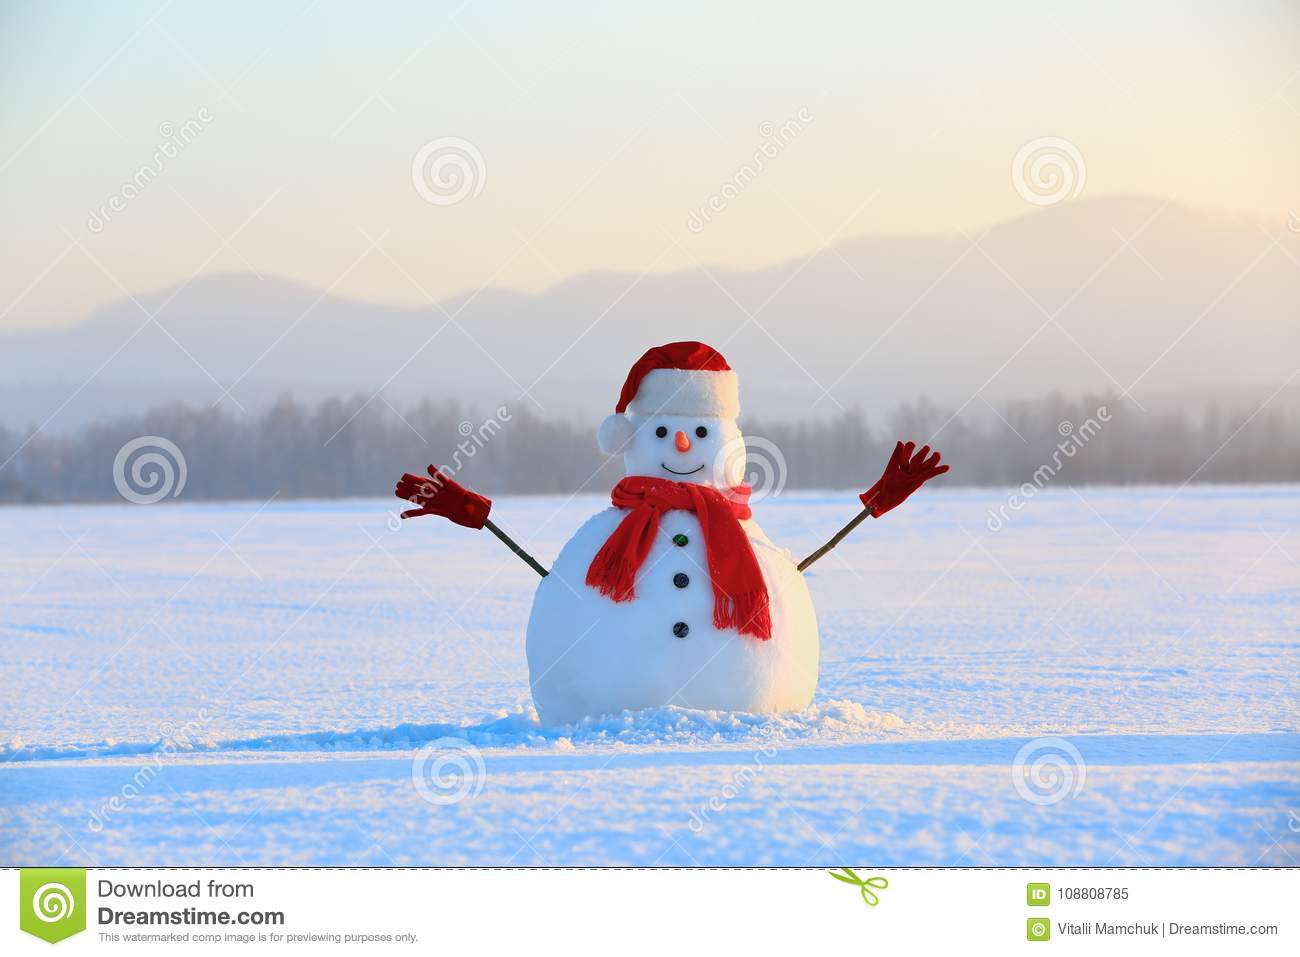 Snowman in red hat and scarf. Christmas scenery. High mountains at the background.